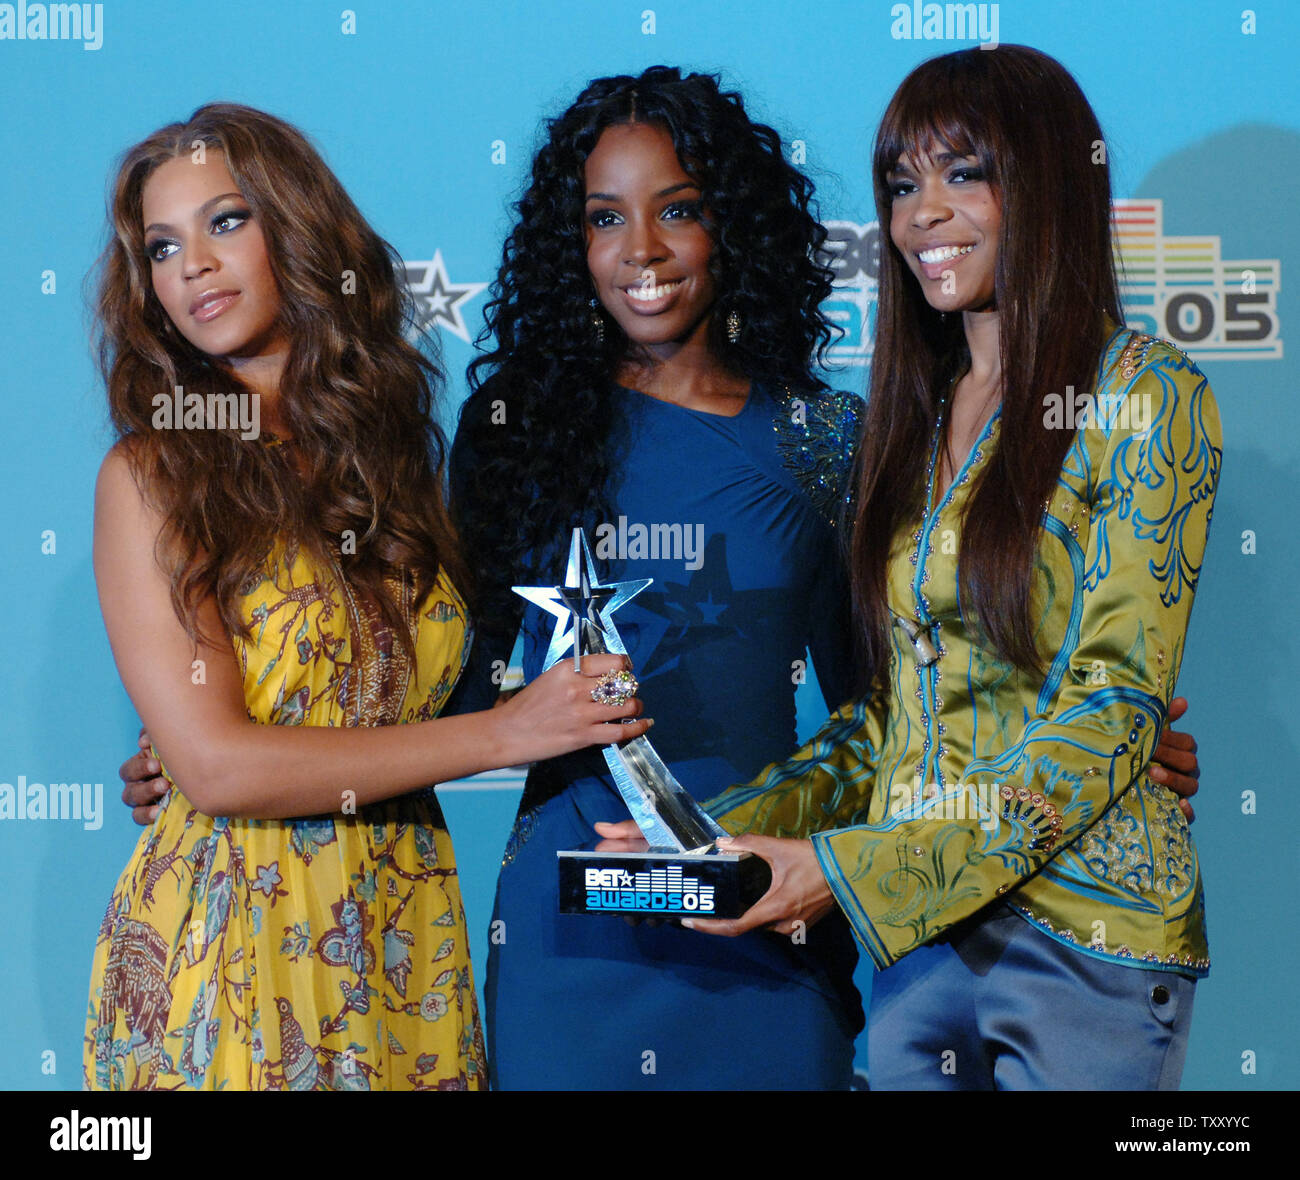 Beyonce Knowles, Kelly Rowland and Michelle Williams (L-R